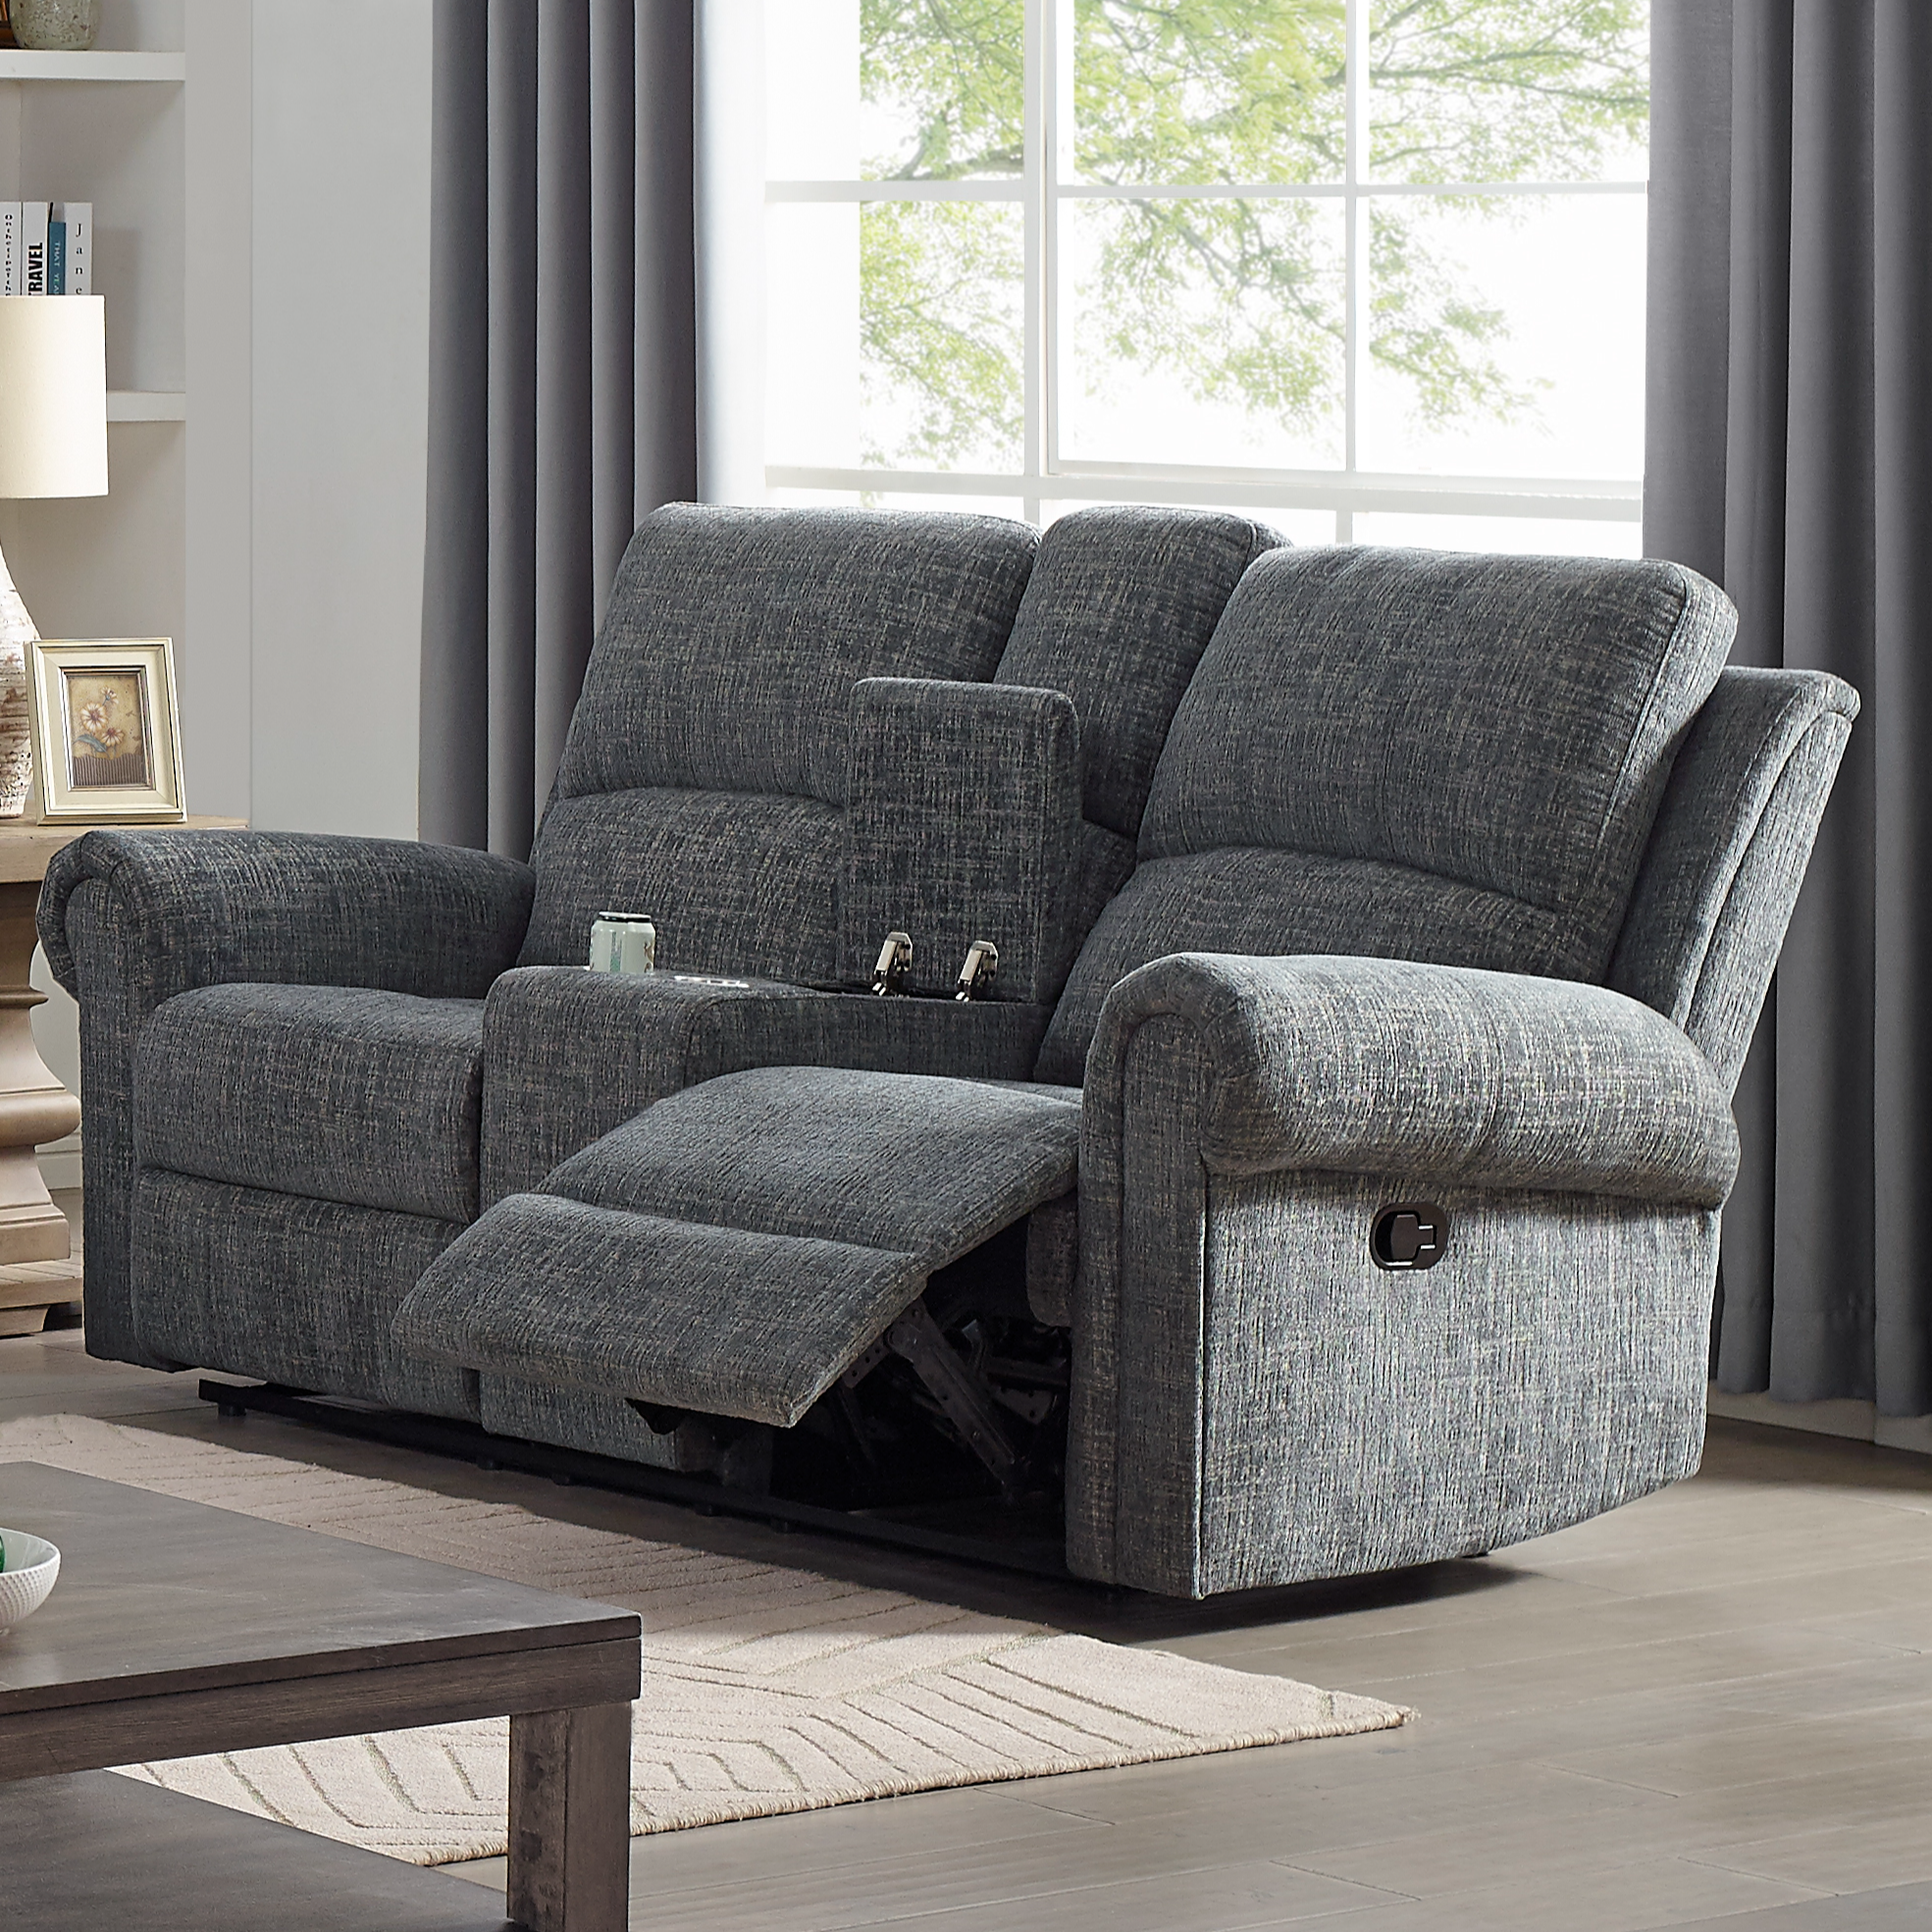 Connor Reclining Console Loveseat by New Classic at Beds N Stuff